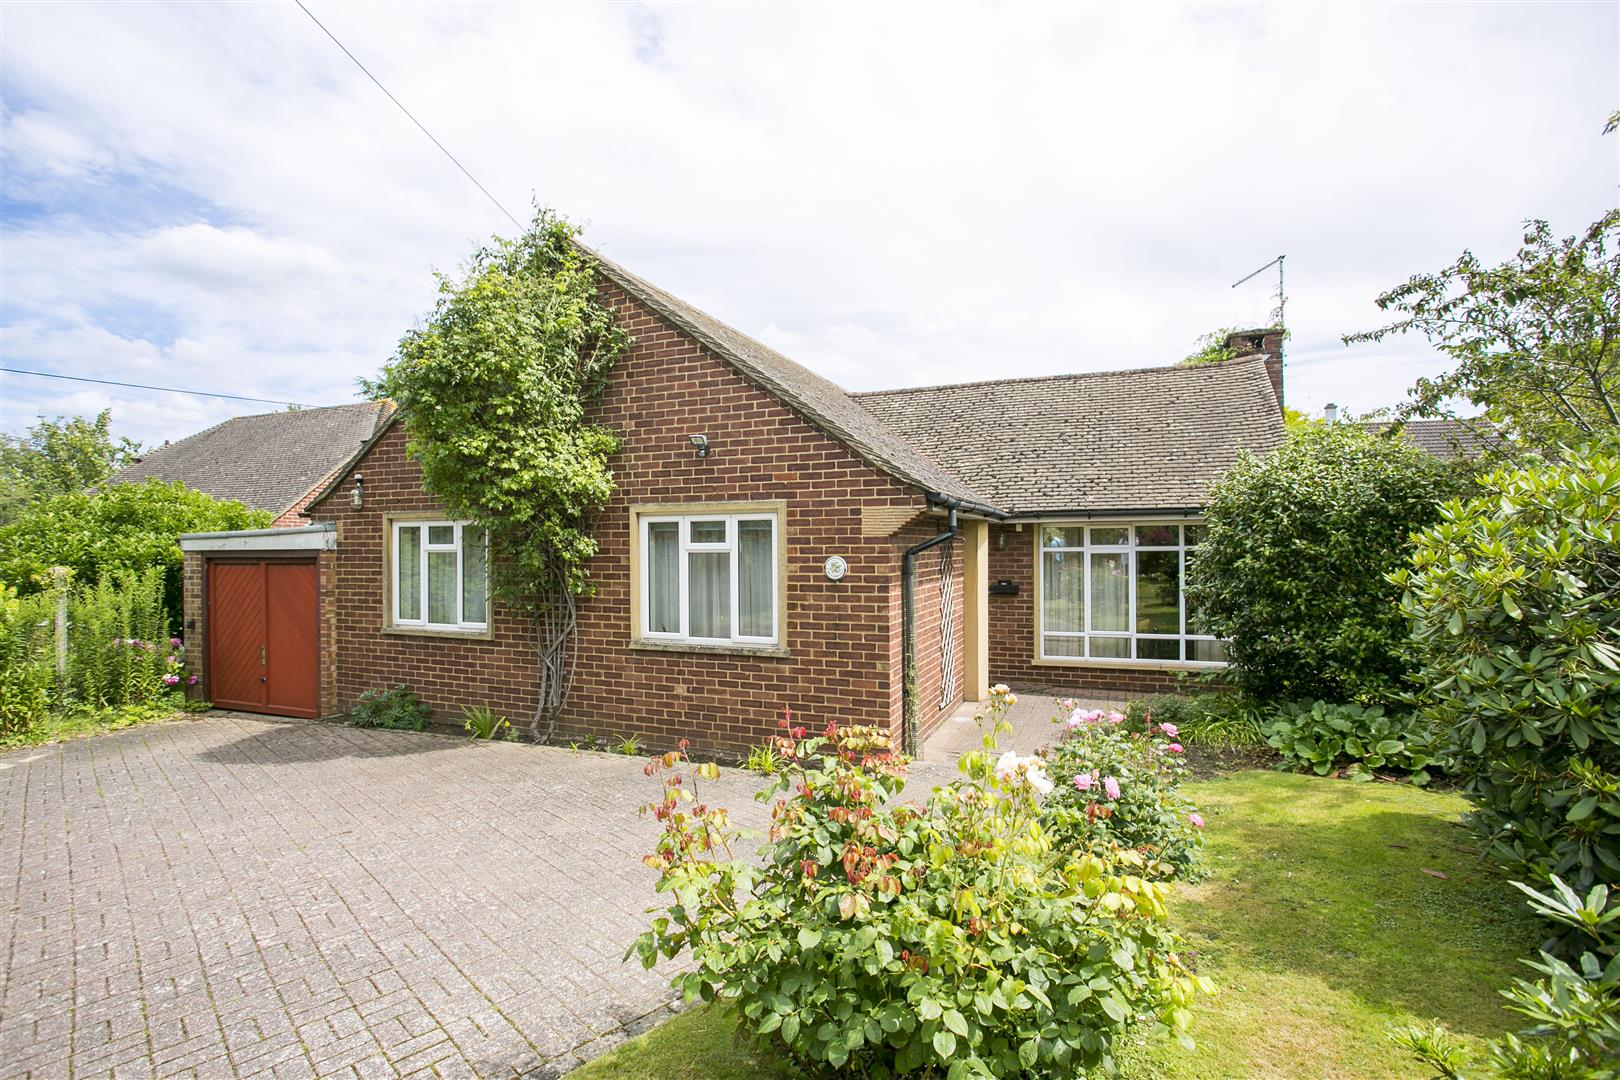 3 Bedrooms Bungalow for sale in Rectory Lane South, Leybourne, West Malling